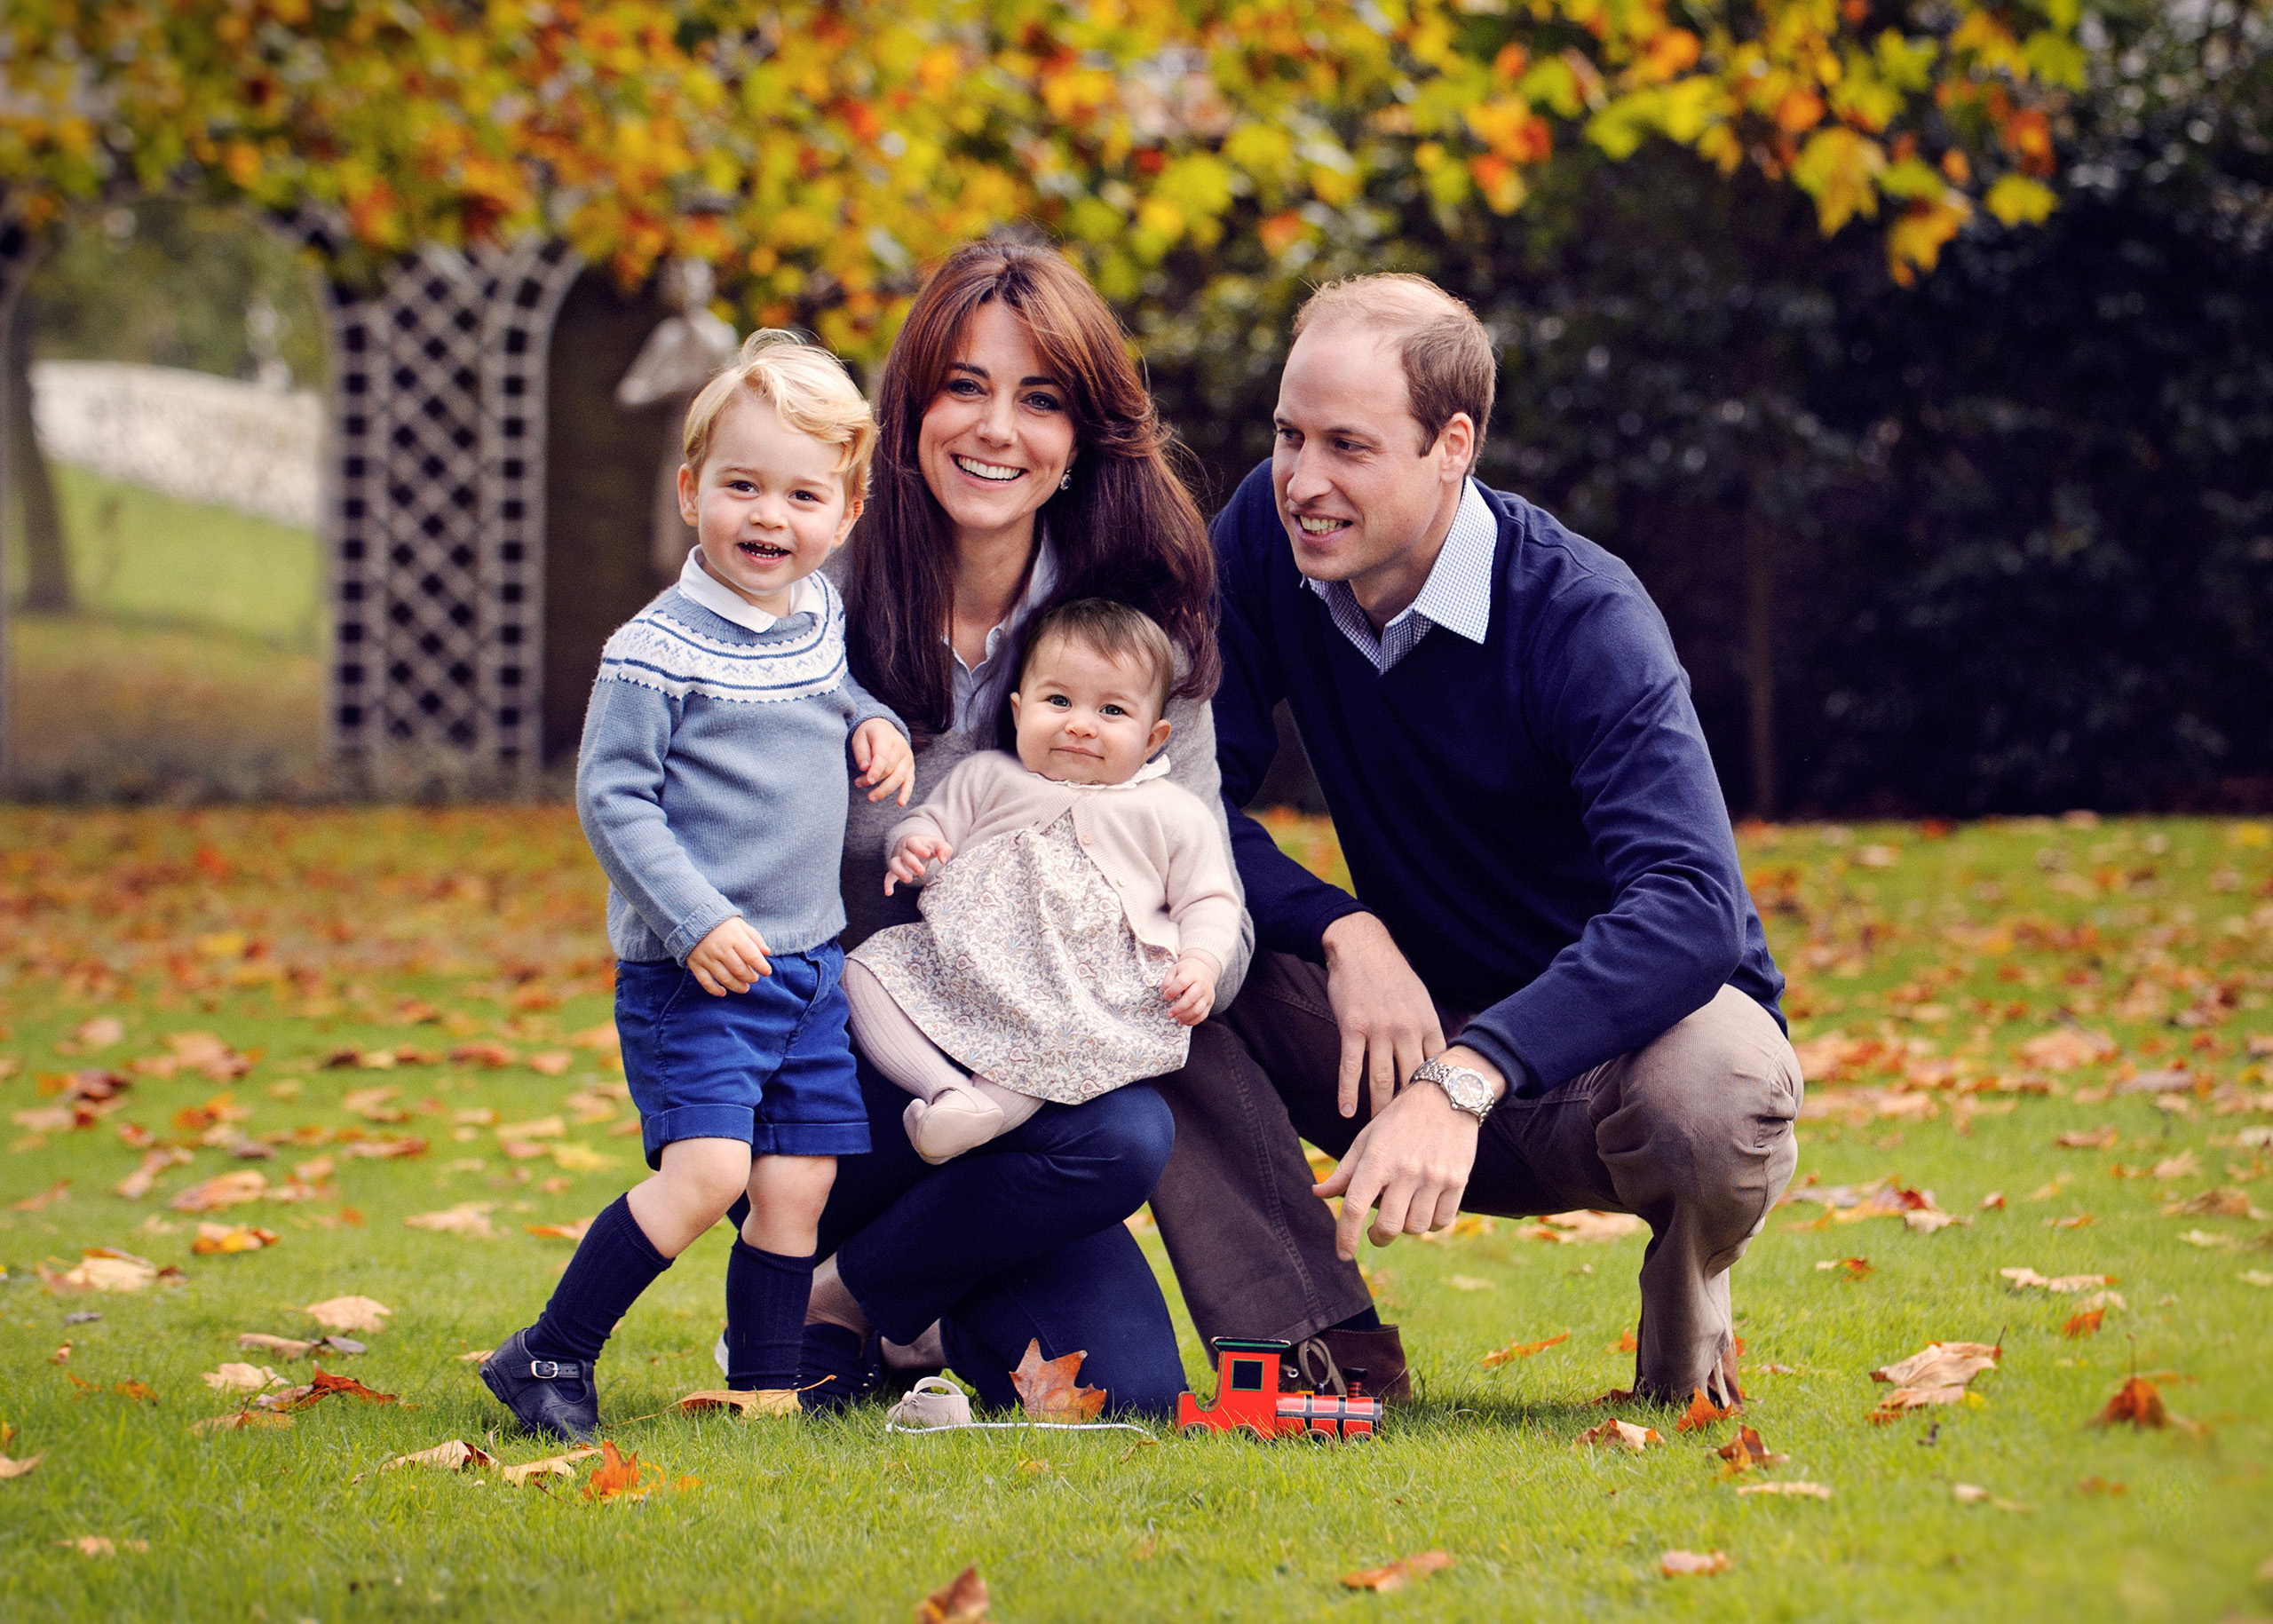 The Duke and Duchess of Cambridge with their two children, Prince George and Princess Charlotte, at Kensington Palace in London, Dec. 29, 2015.